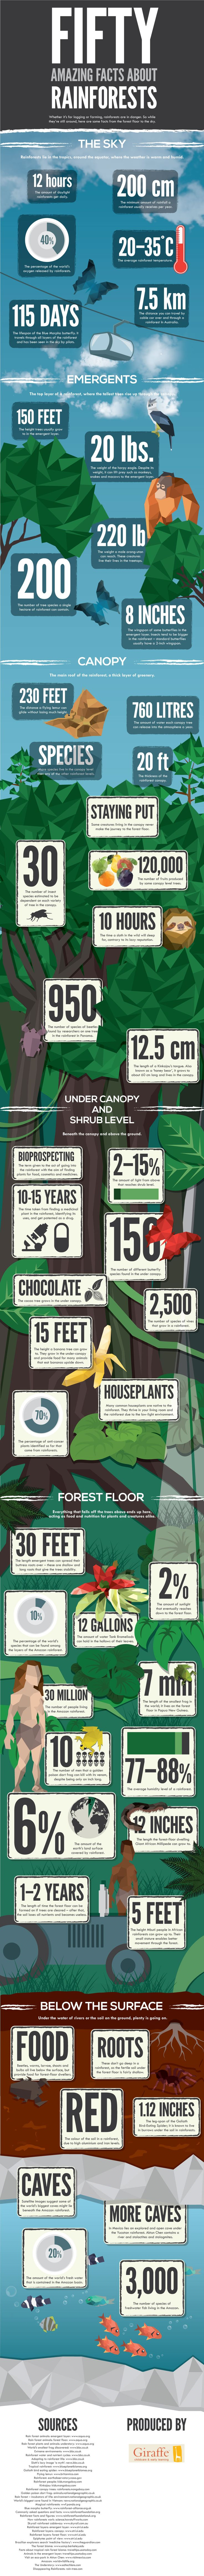 Protected: 50 Amazing Facts About The Rainforest - U.S. Green Technology